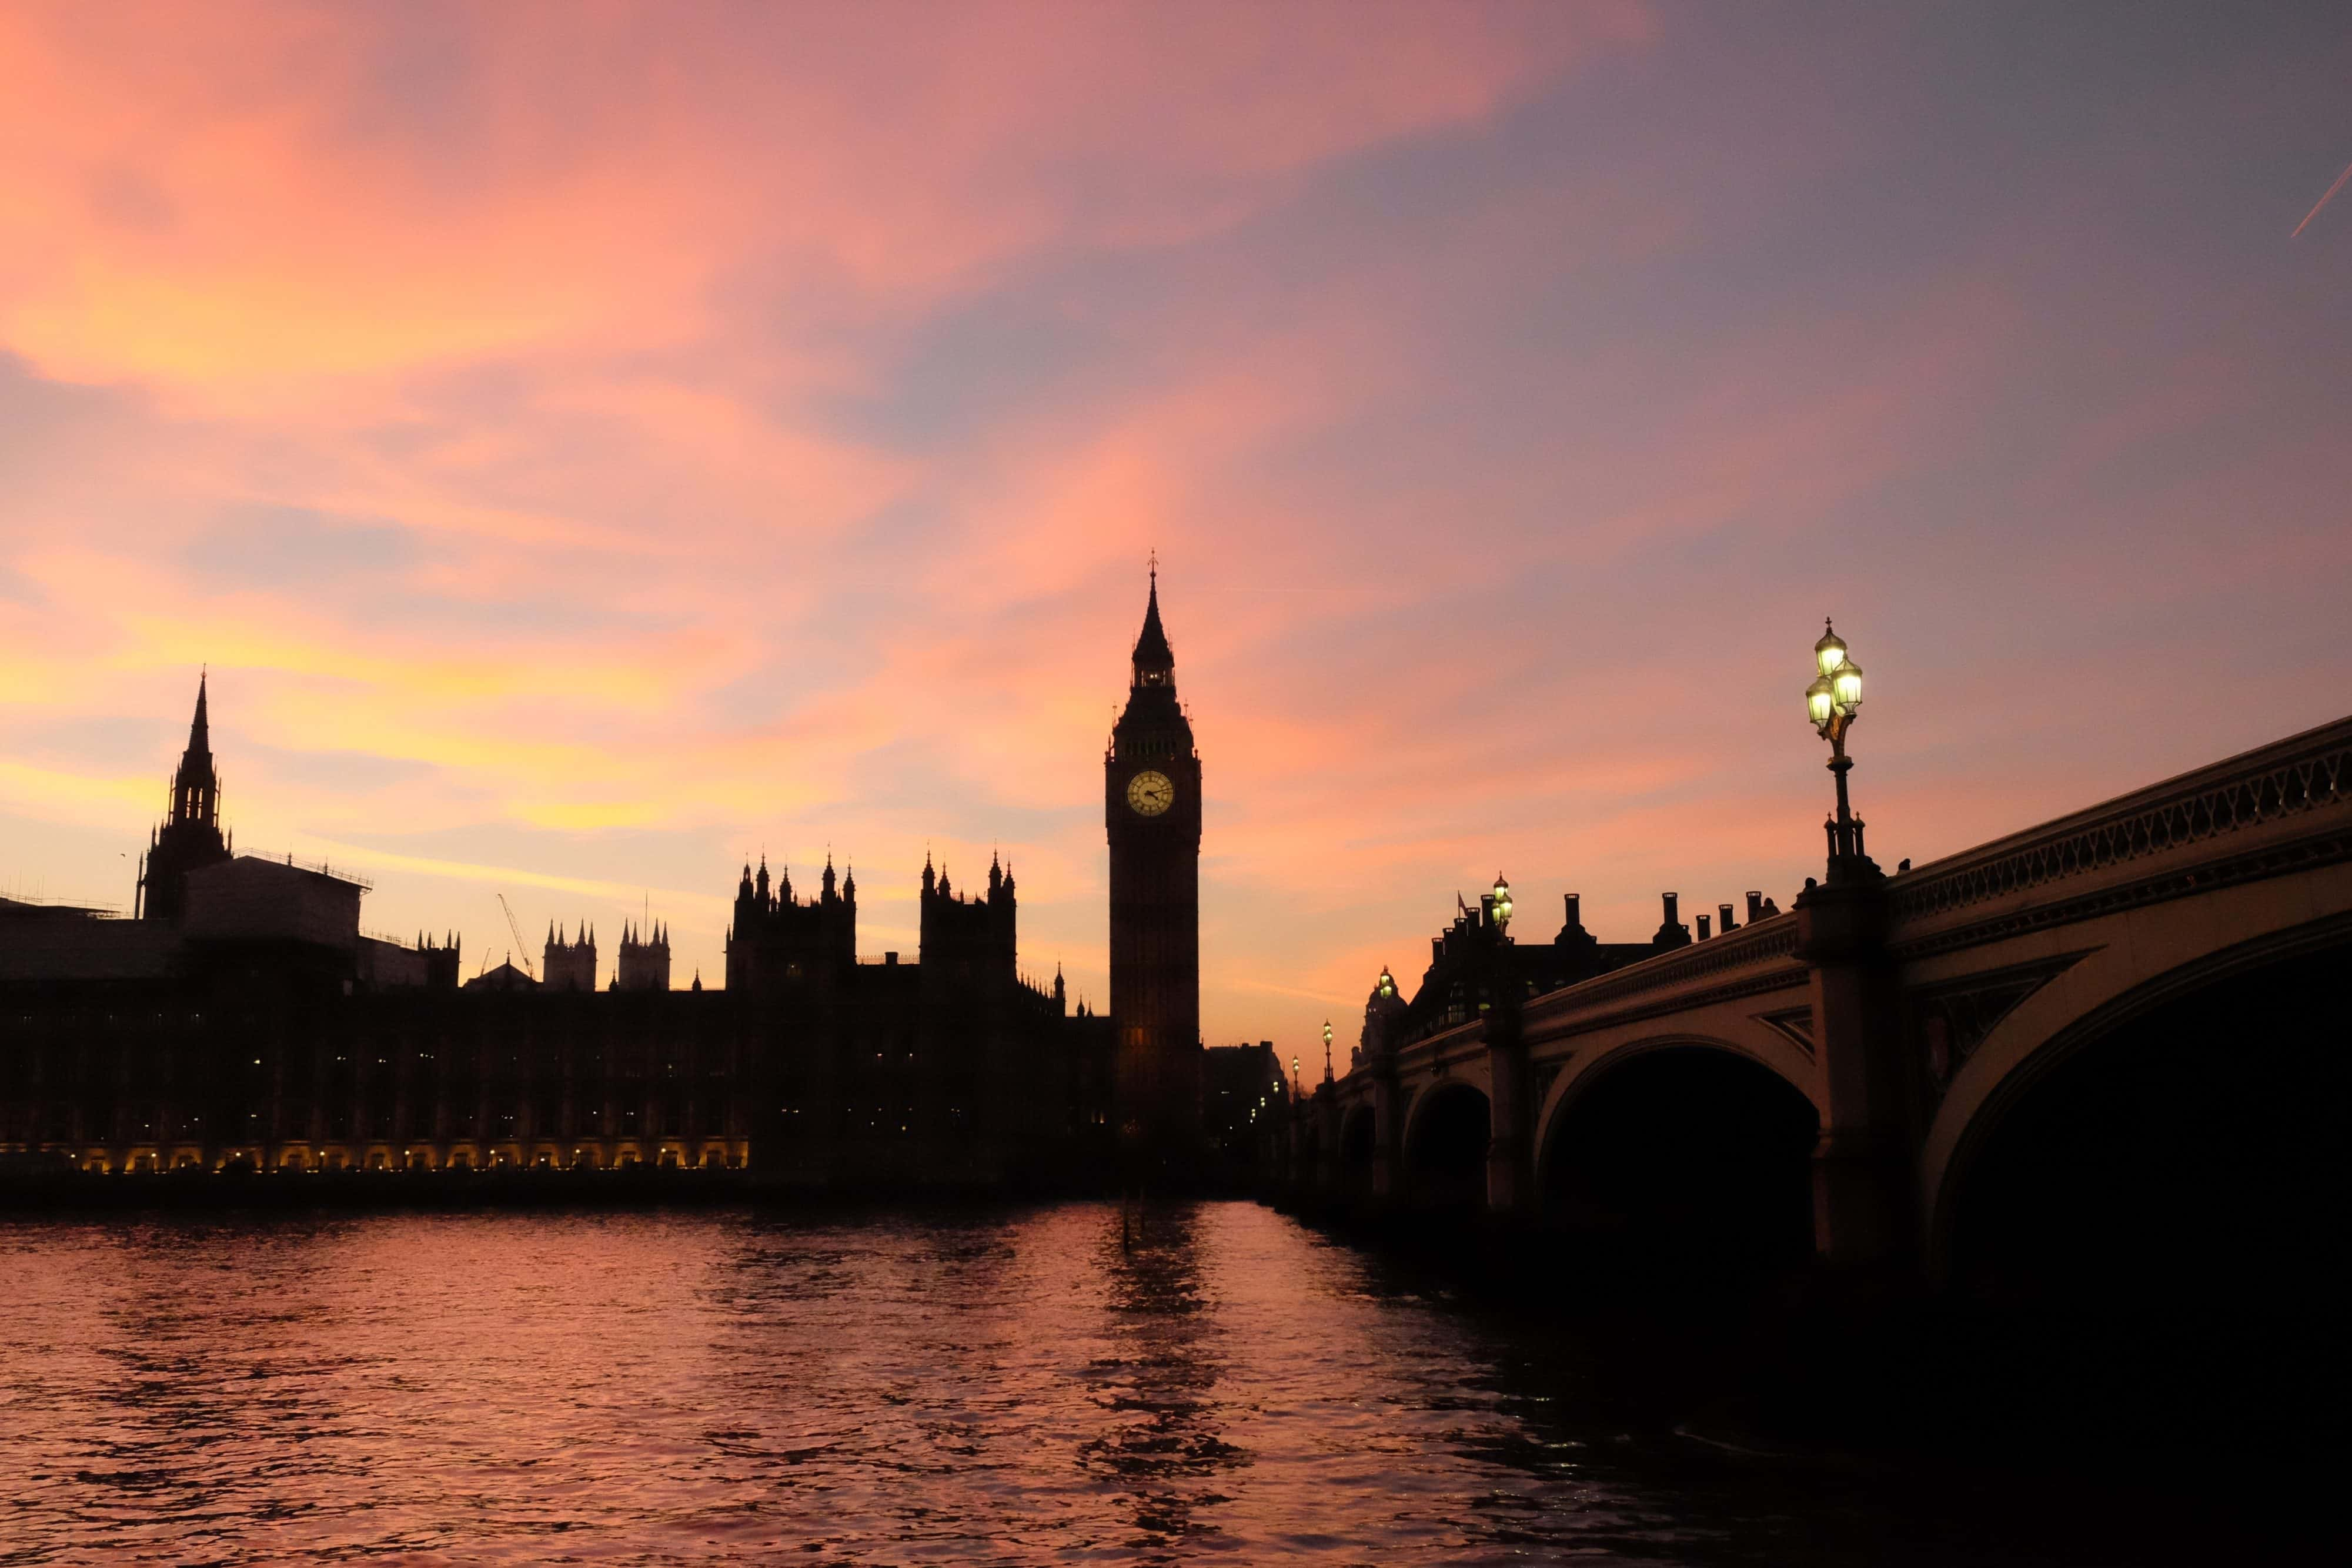 London skyline scene at dusk over the Thames with Big Ben in background